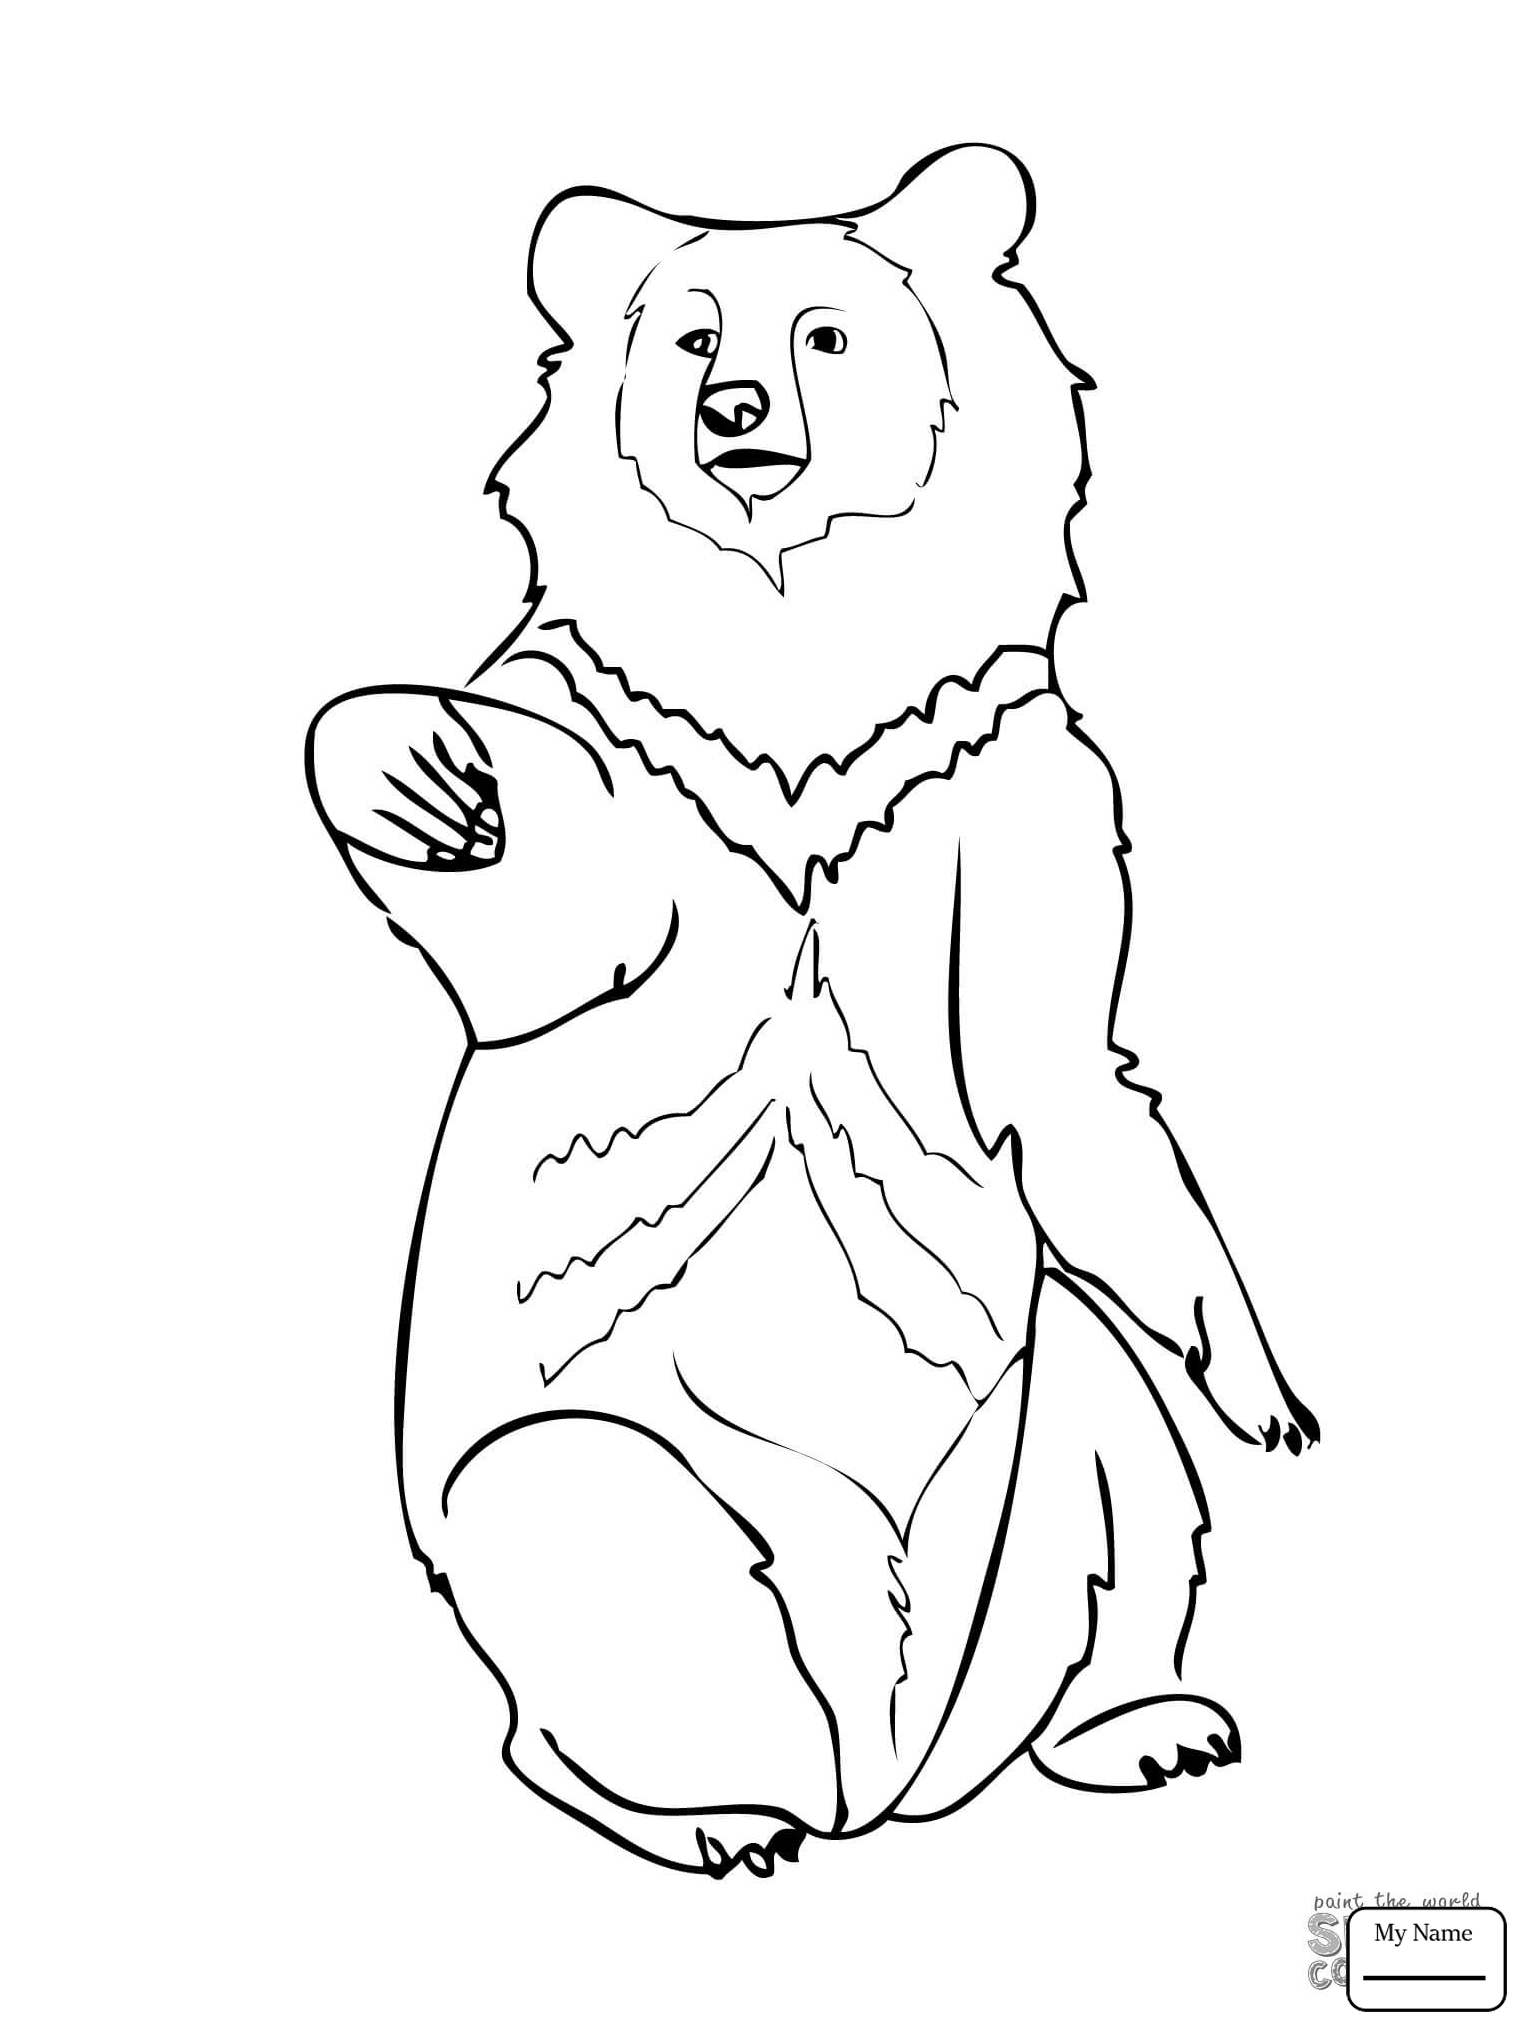 1530x2040 Coloring Pages Mammals Asia Black Bears Asia Black Bear Standing